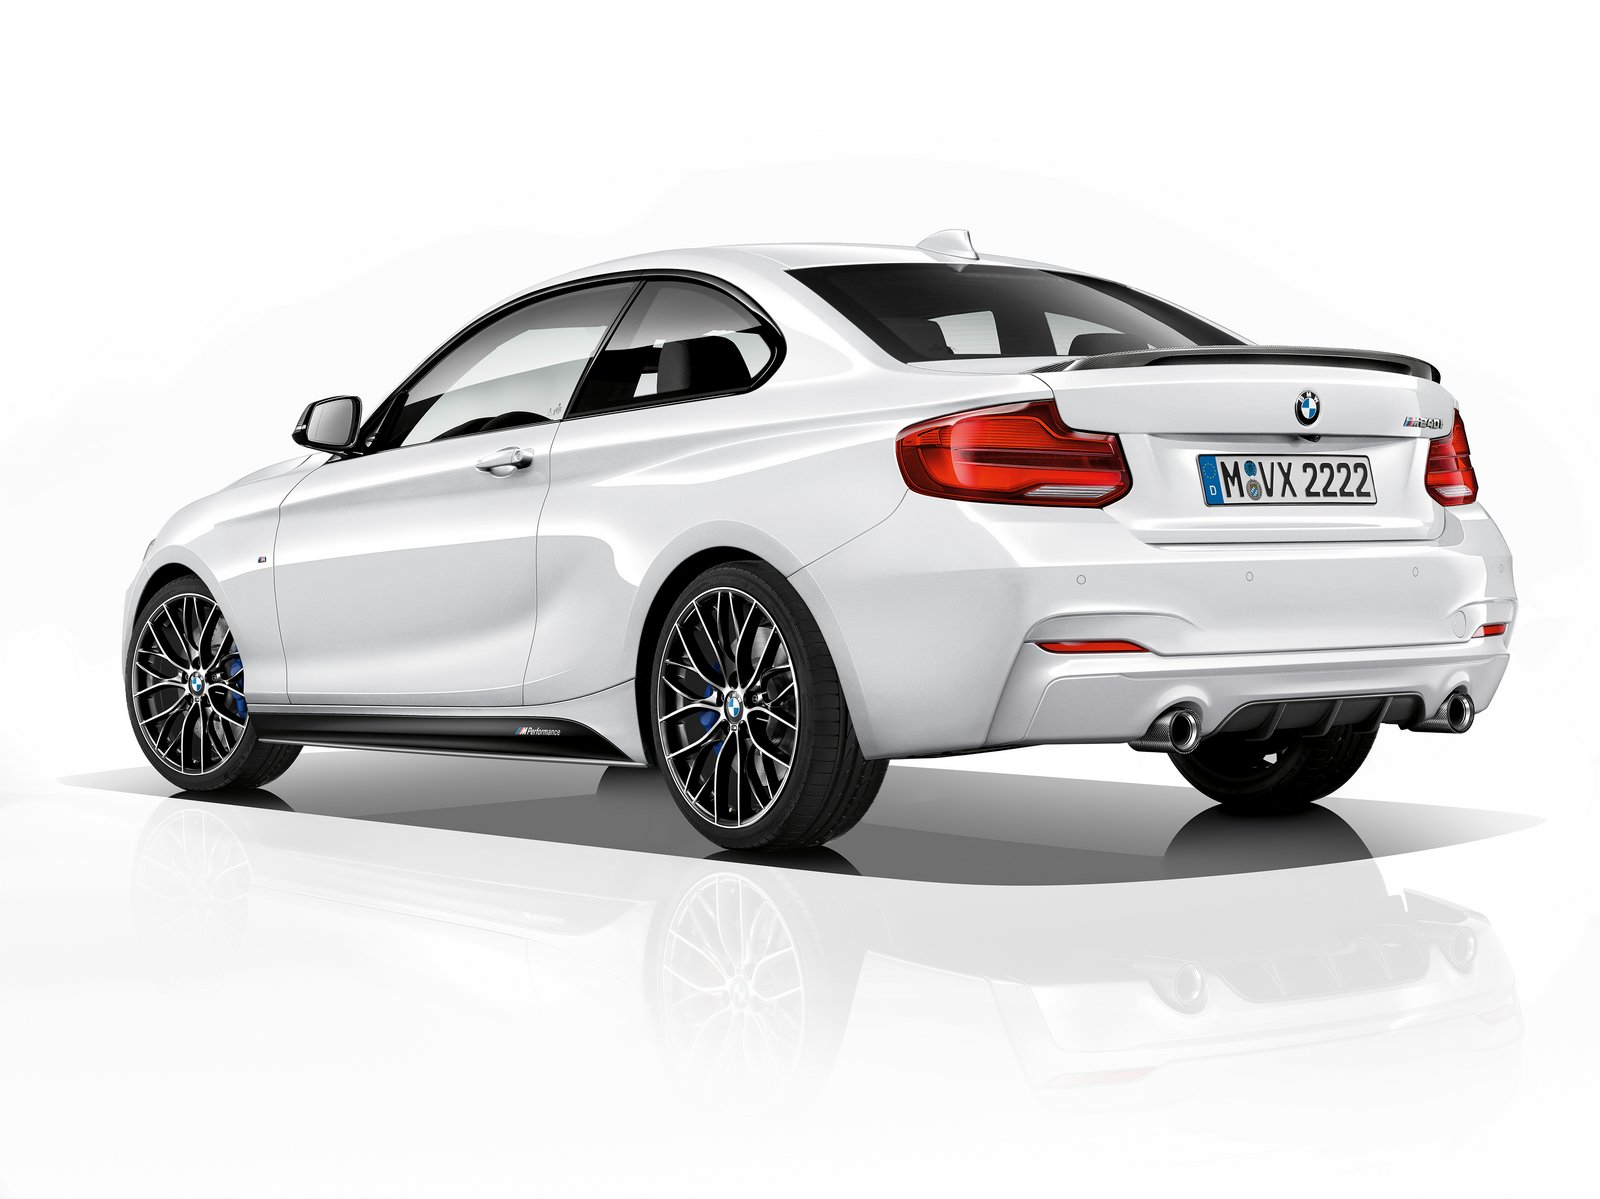 new bmw m240i m performance edition boasts 335 hp and m. Black Bedroom Furniture Sets. Home Design Ideas